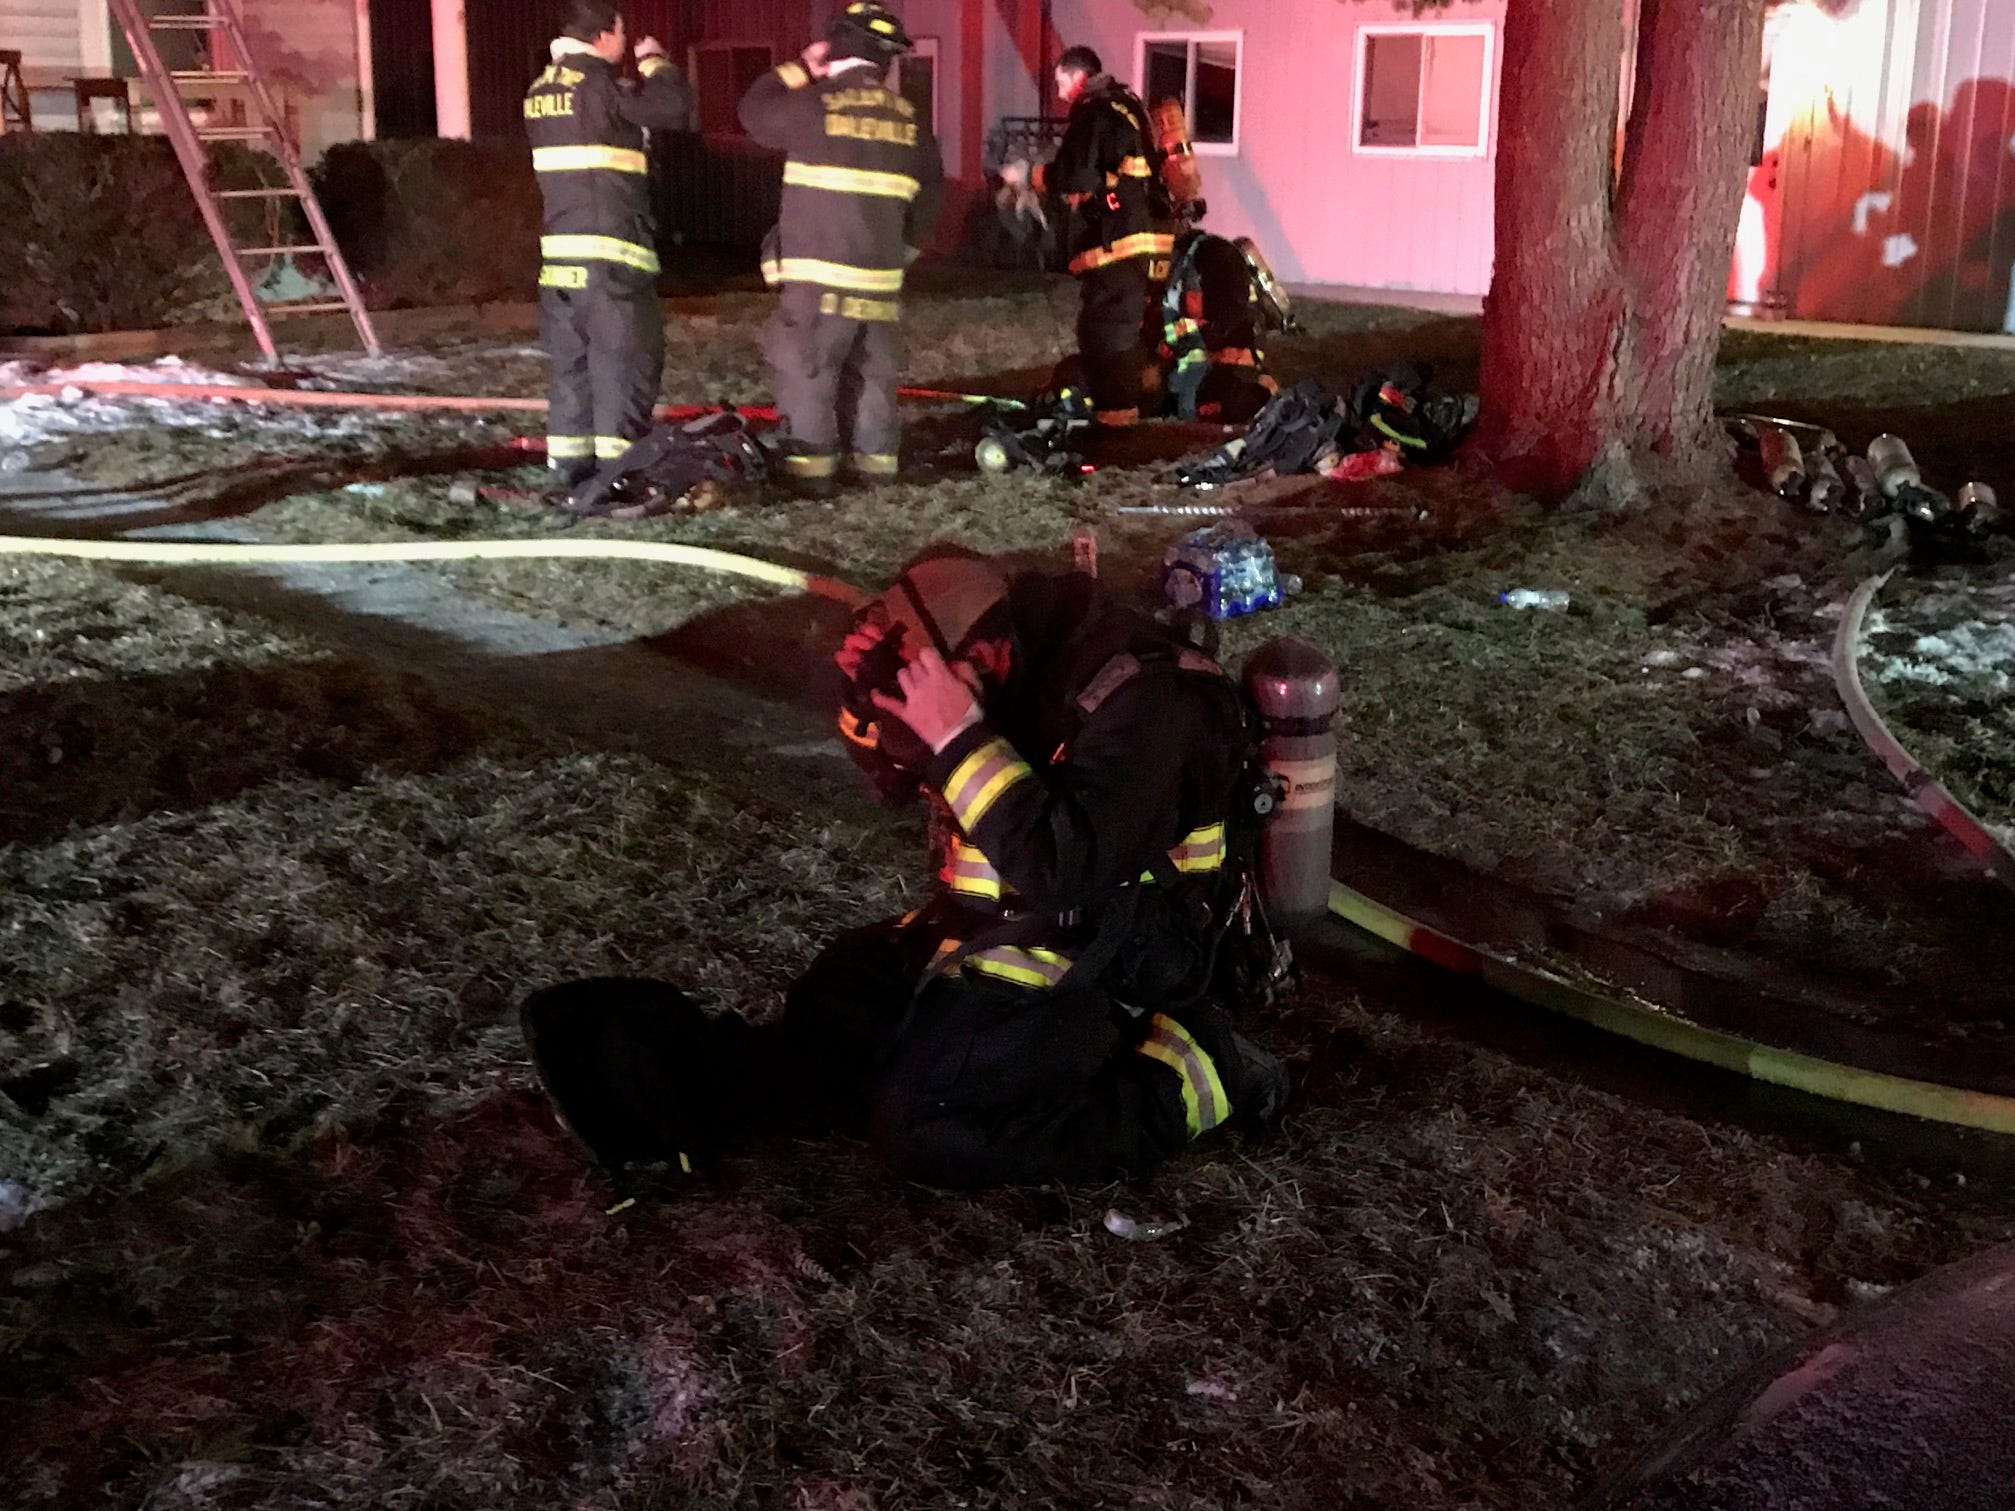 Firefighters from Yorktown and other area departments late Friday battled a blaze, while contending with snow and frigid temperatures, in a house containing four apartments in the unincorporated community of Cammack.